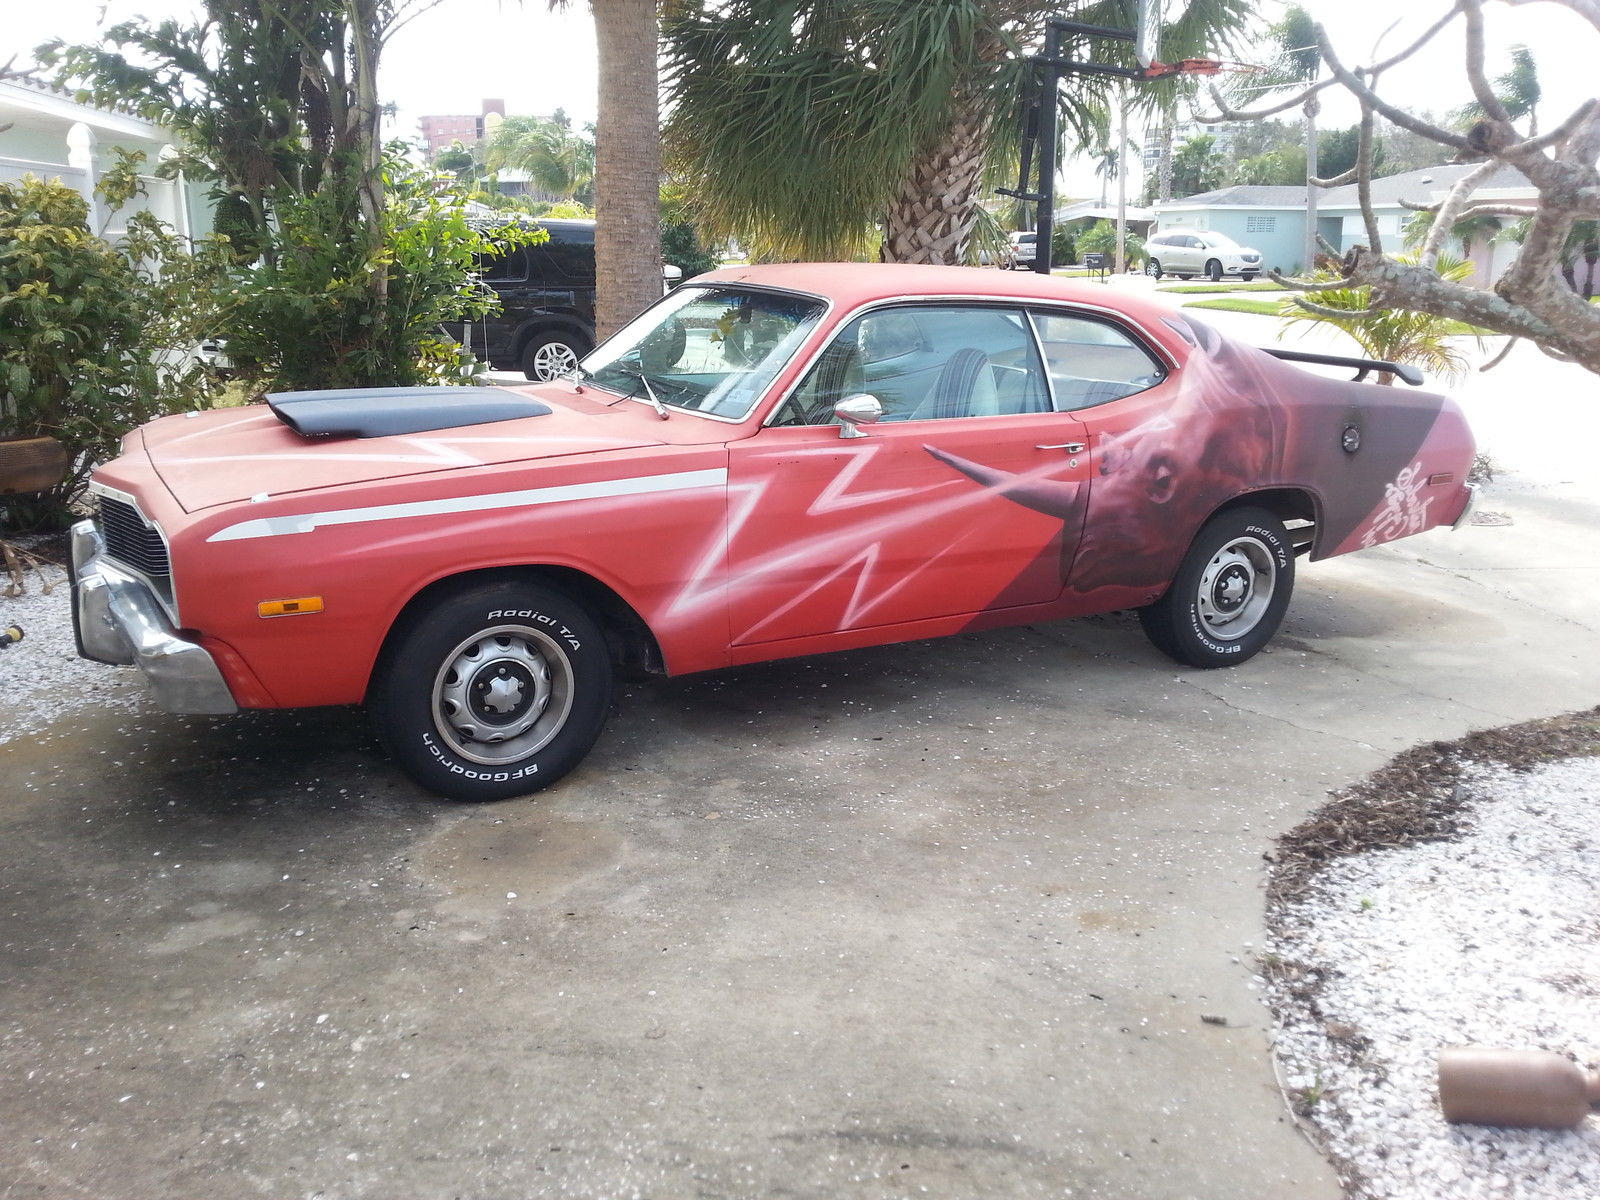 Ever Seen A 1975 Hang Rhino Duster? Heck, Ever Seen A Rhino Painted On A Car?